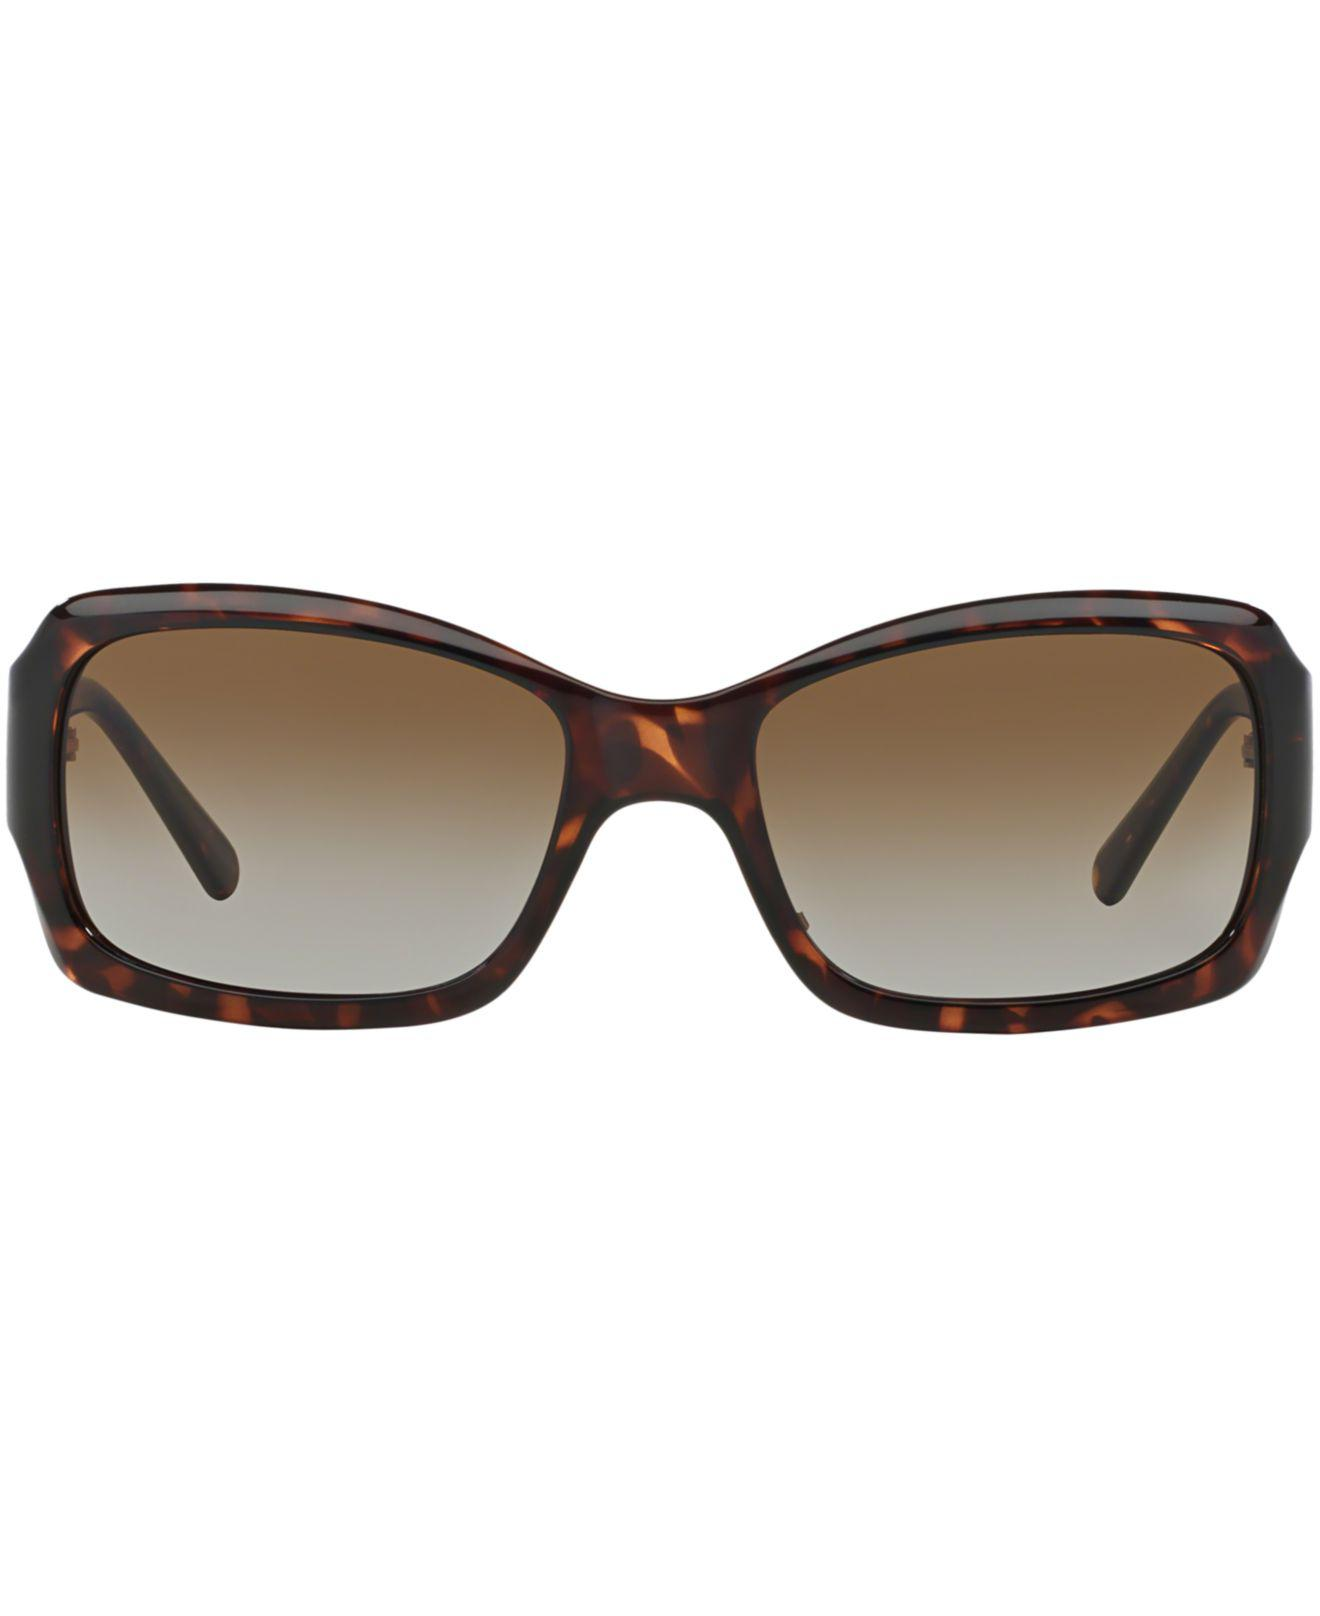 dceeb438df80 Lyst - Tory Burch Sunglasses, Ty9028p in Brown